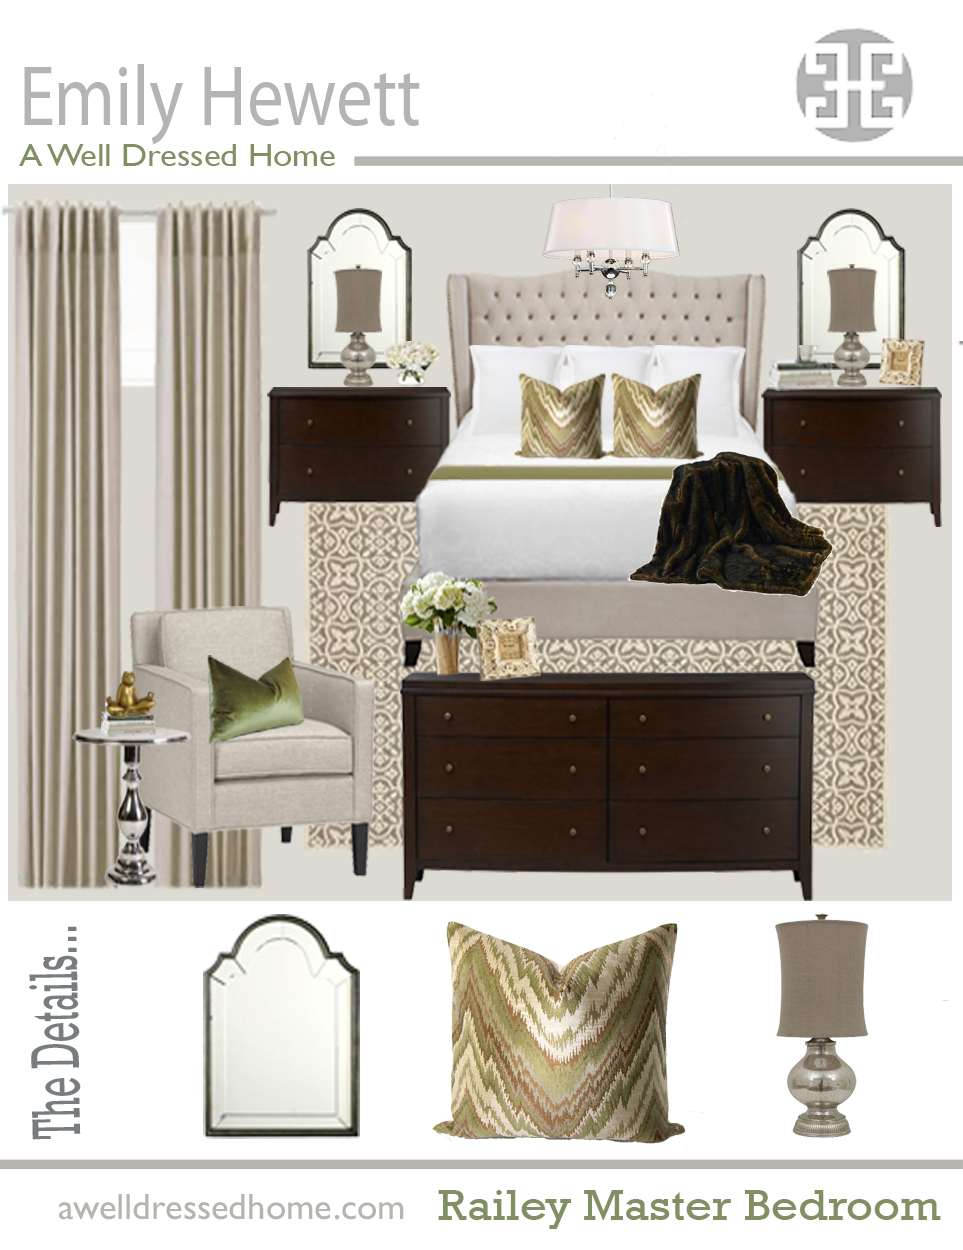 Railey Master Bedroom Design Board